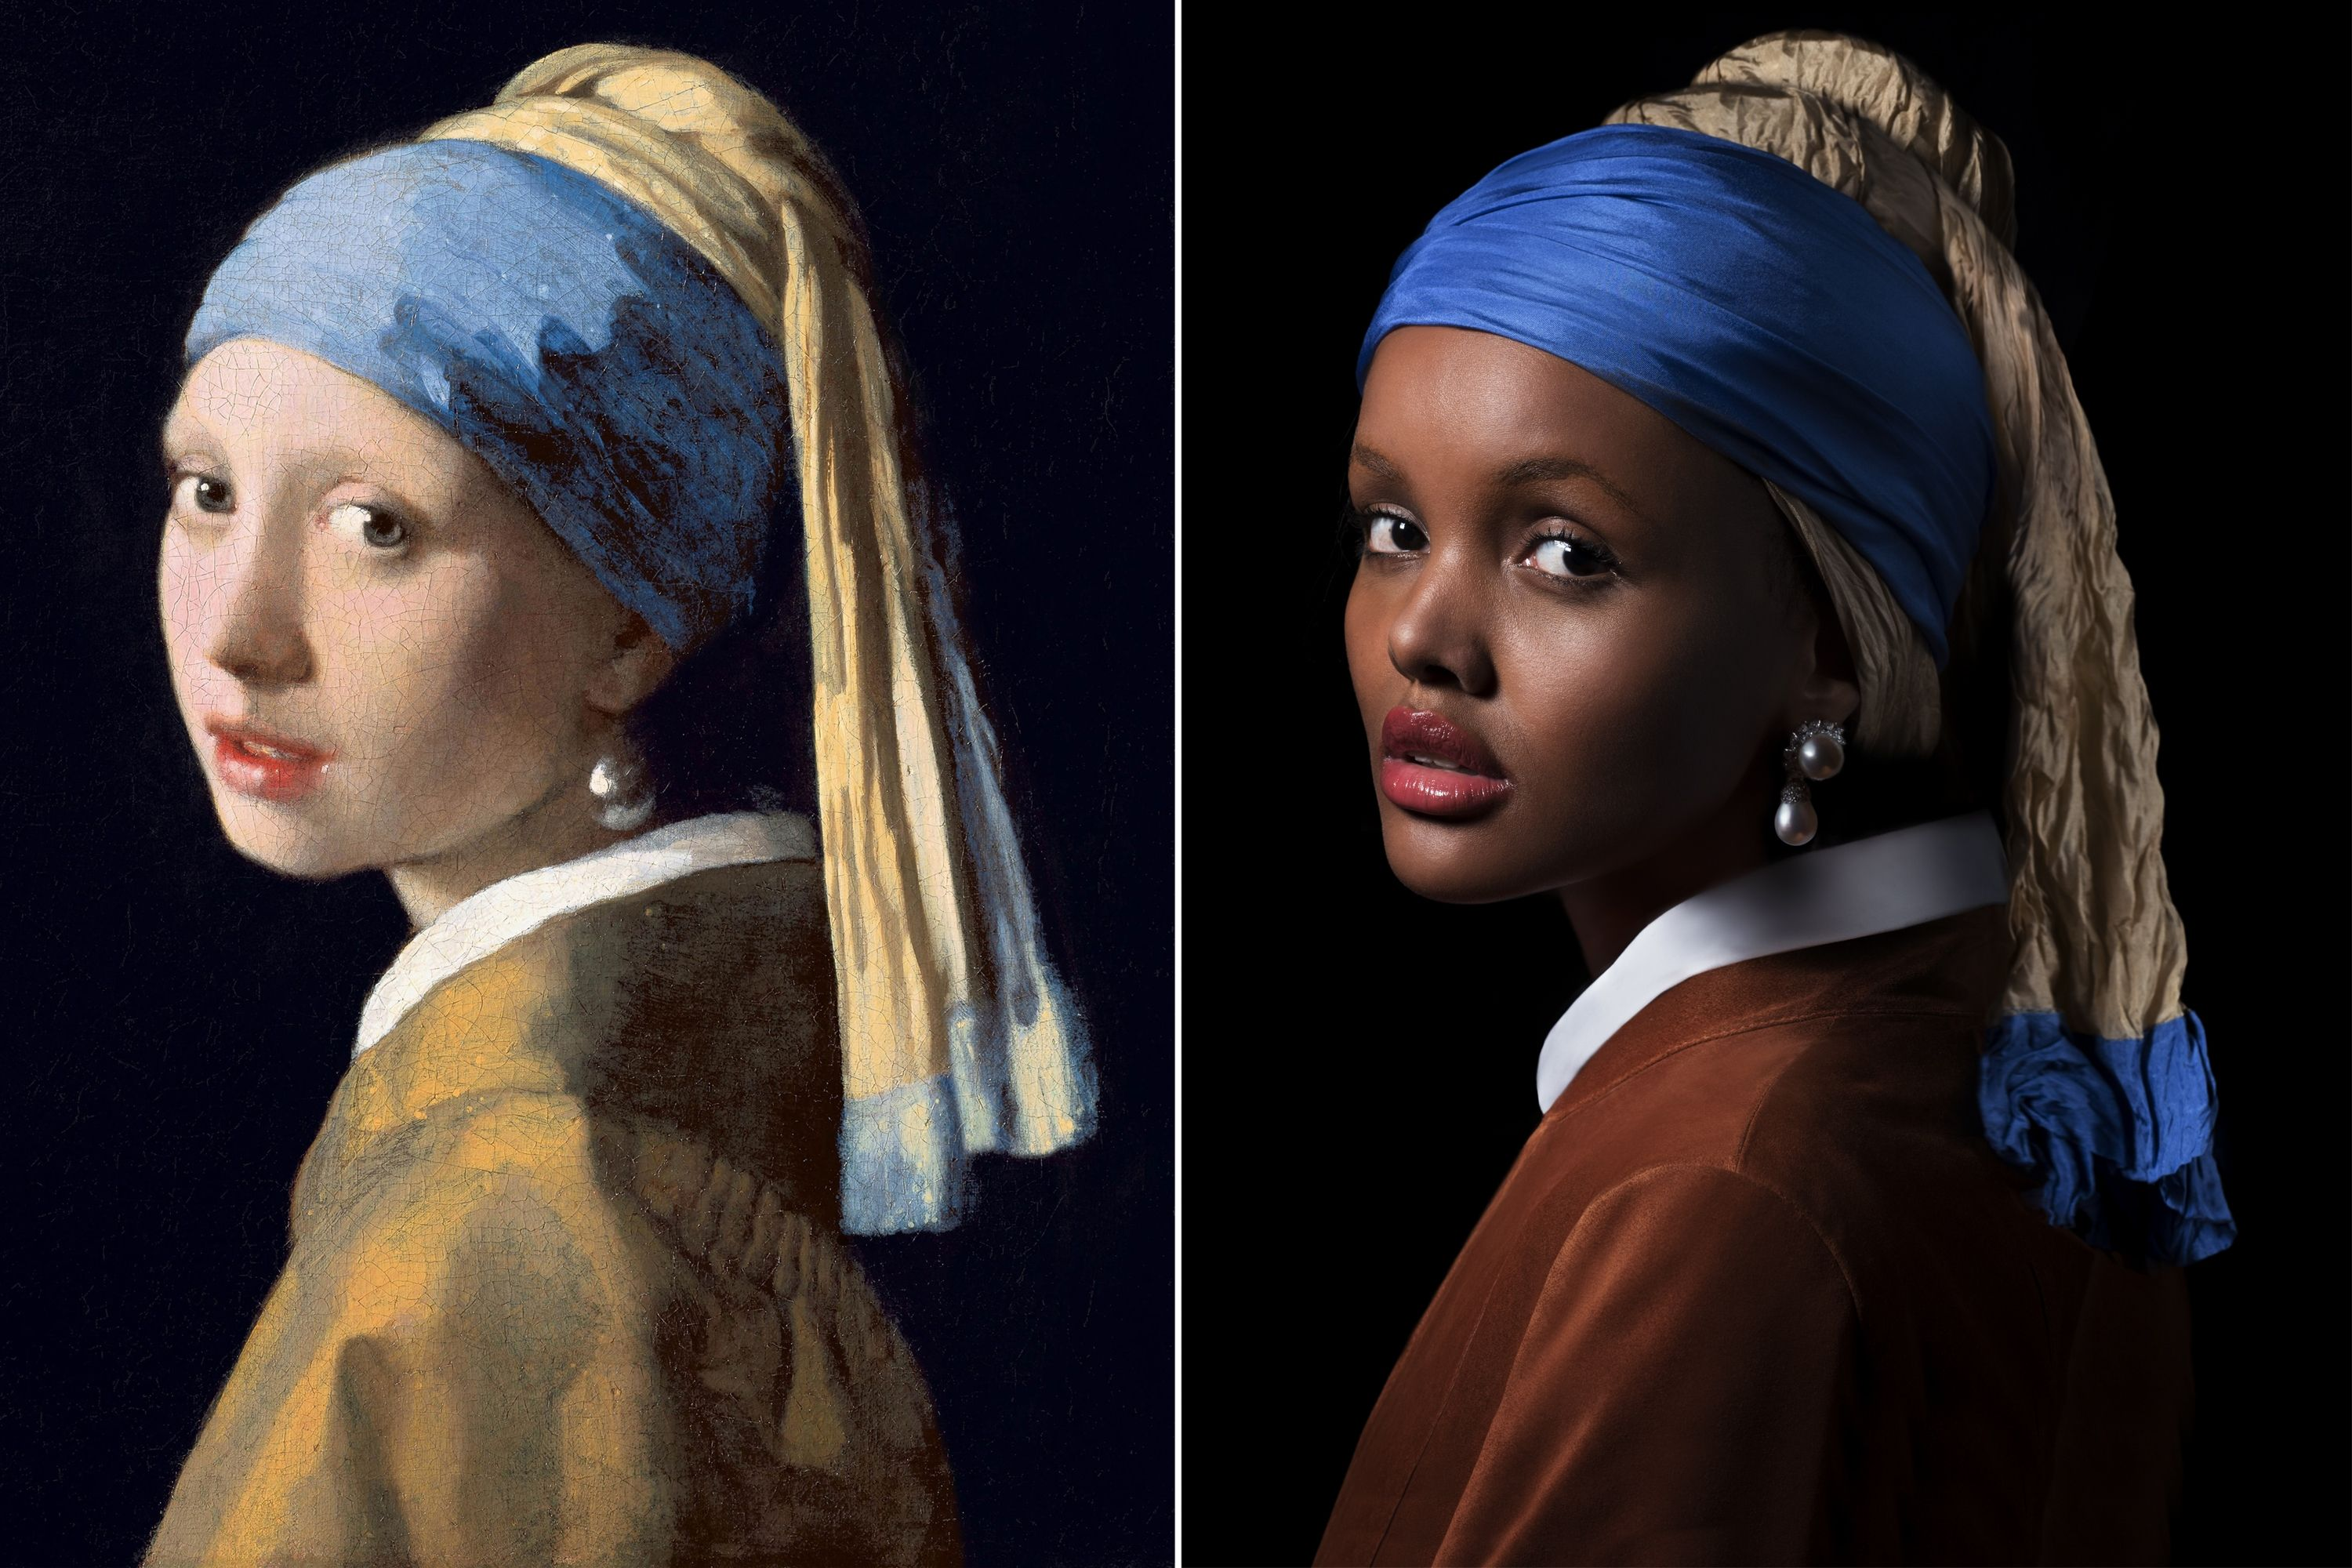 JOHANNES VERMEER, GIRL WITH A PEARL EARRING, CIRCA 1665–66, OIL ON CANVAS, MAURITSHUIS, THE HAGUE, THE NETHERLANDS/BRIDGEMAN IMAGES/PARI DUKOVIC